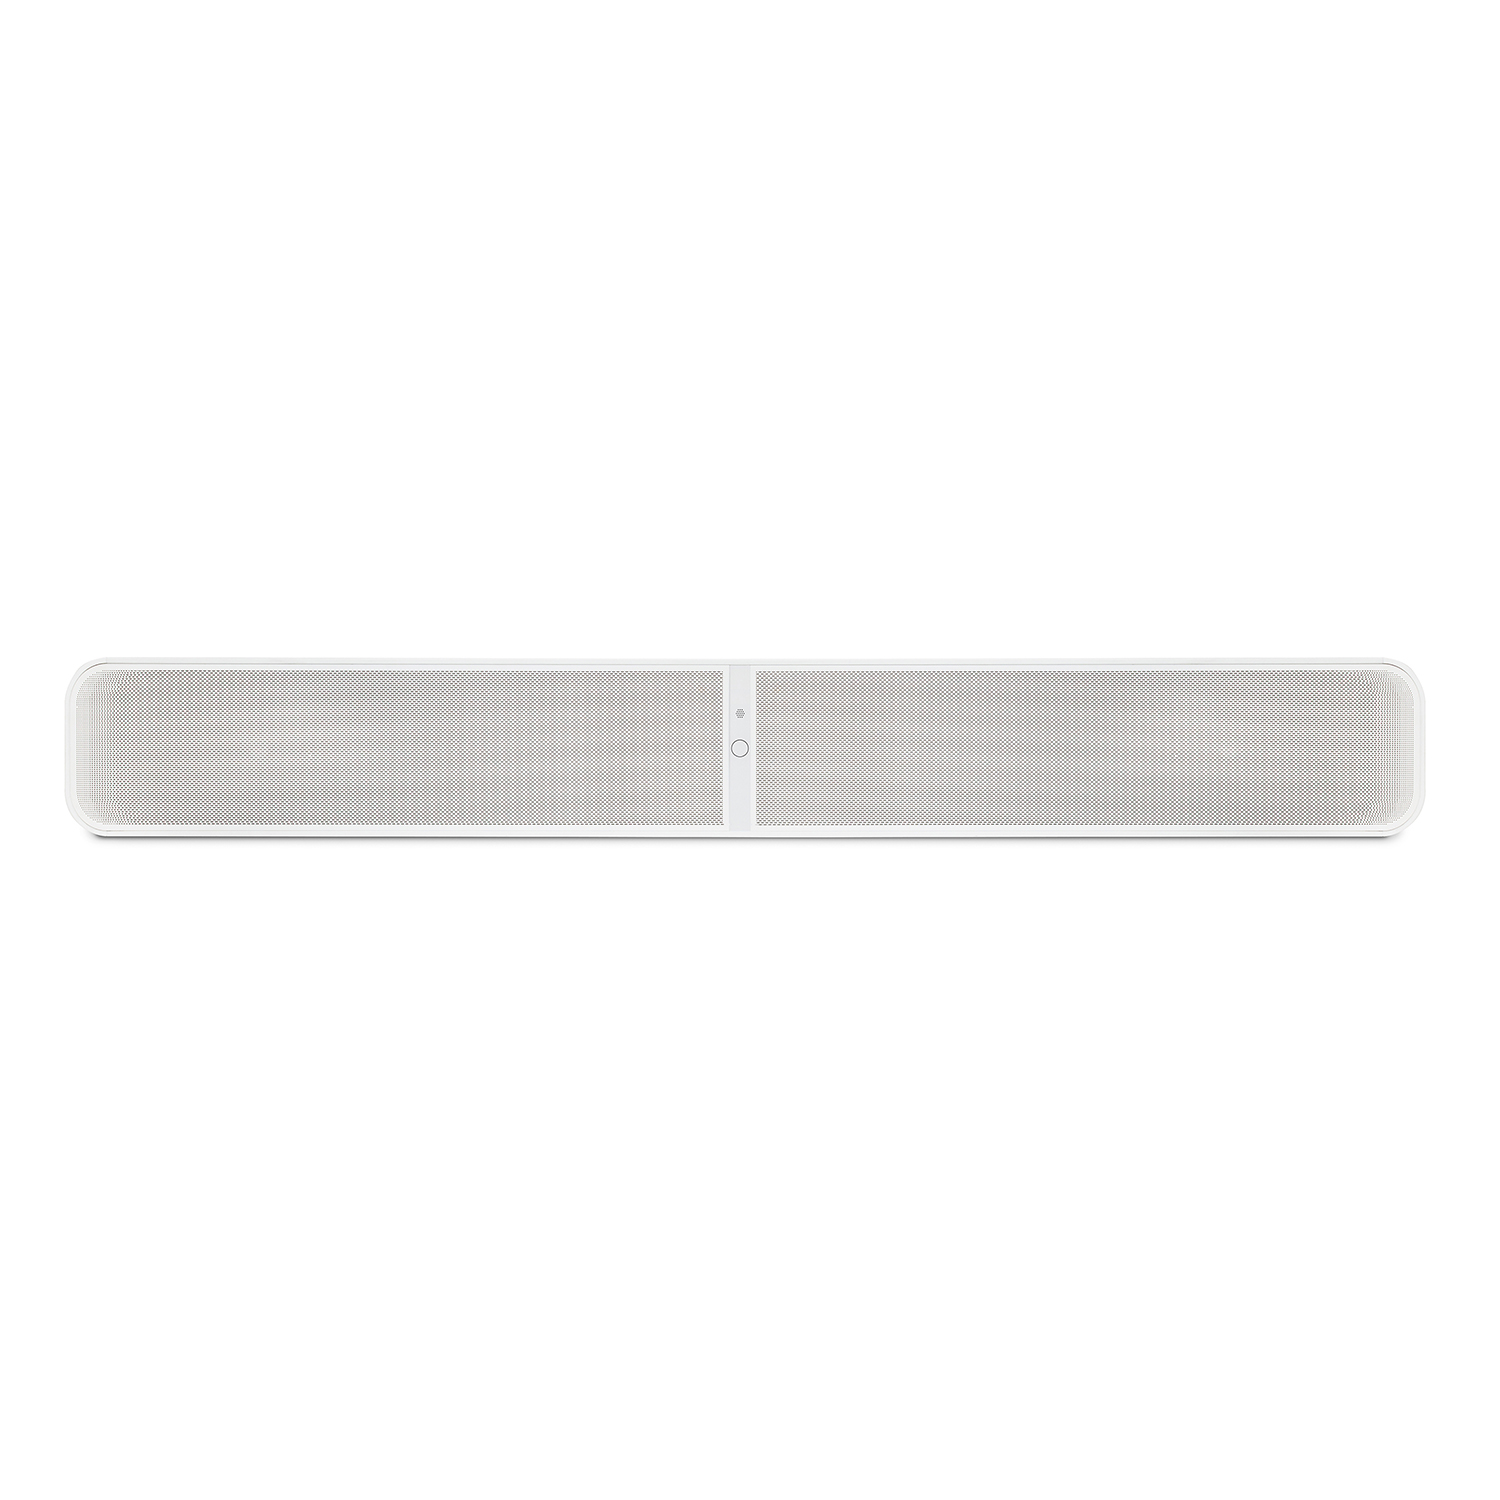 Bluesound Pulse Soundbar 2i Wireless Sound System - White